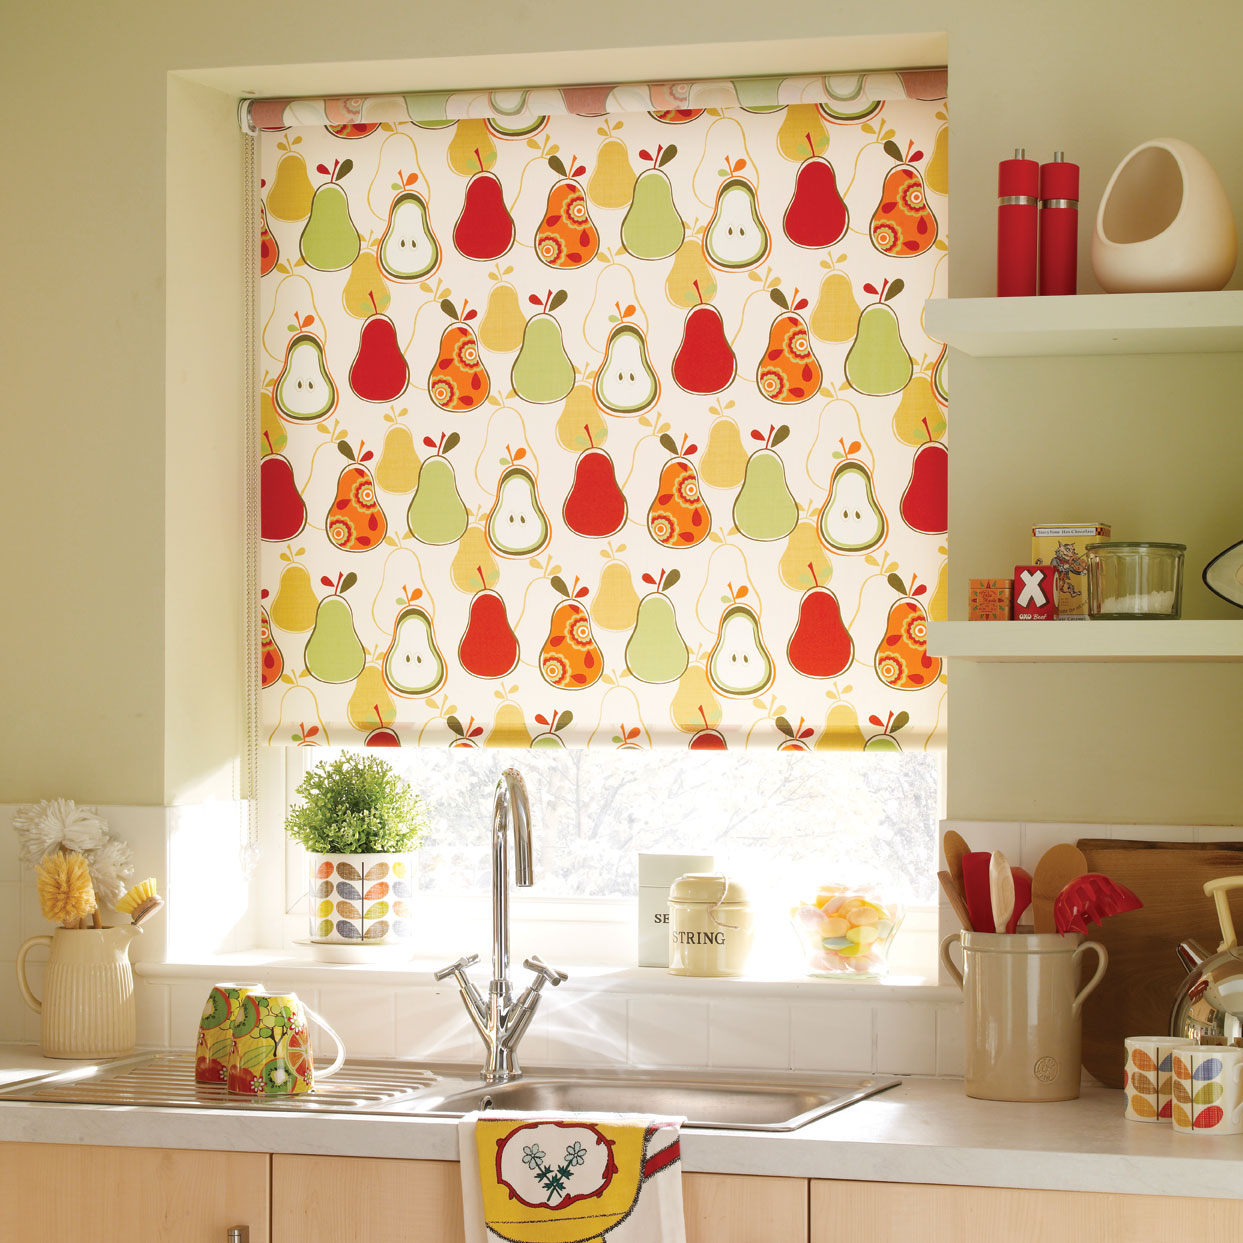 Ideas Para Cortinas De Cocina Kitchen Blinds Roller Venetian And More Expression Blinds